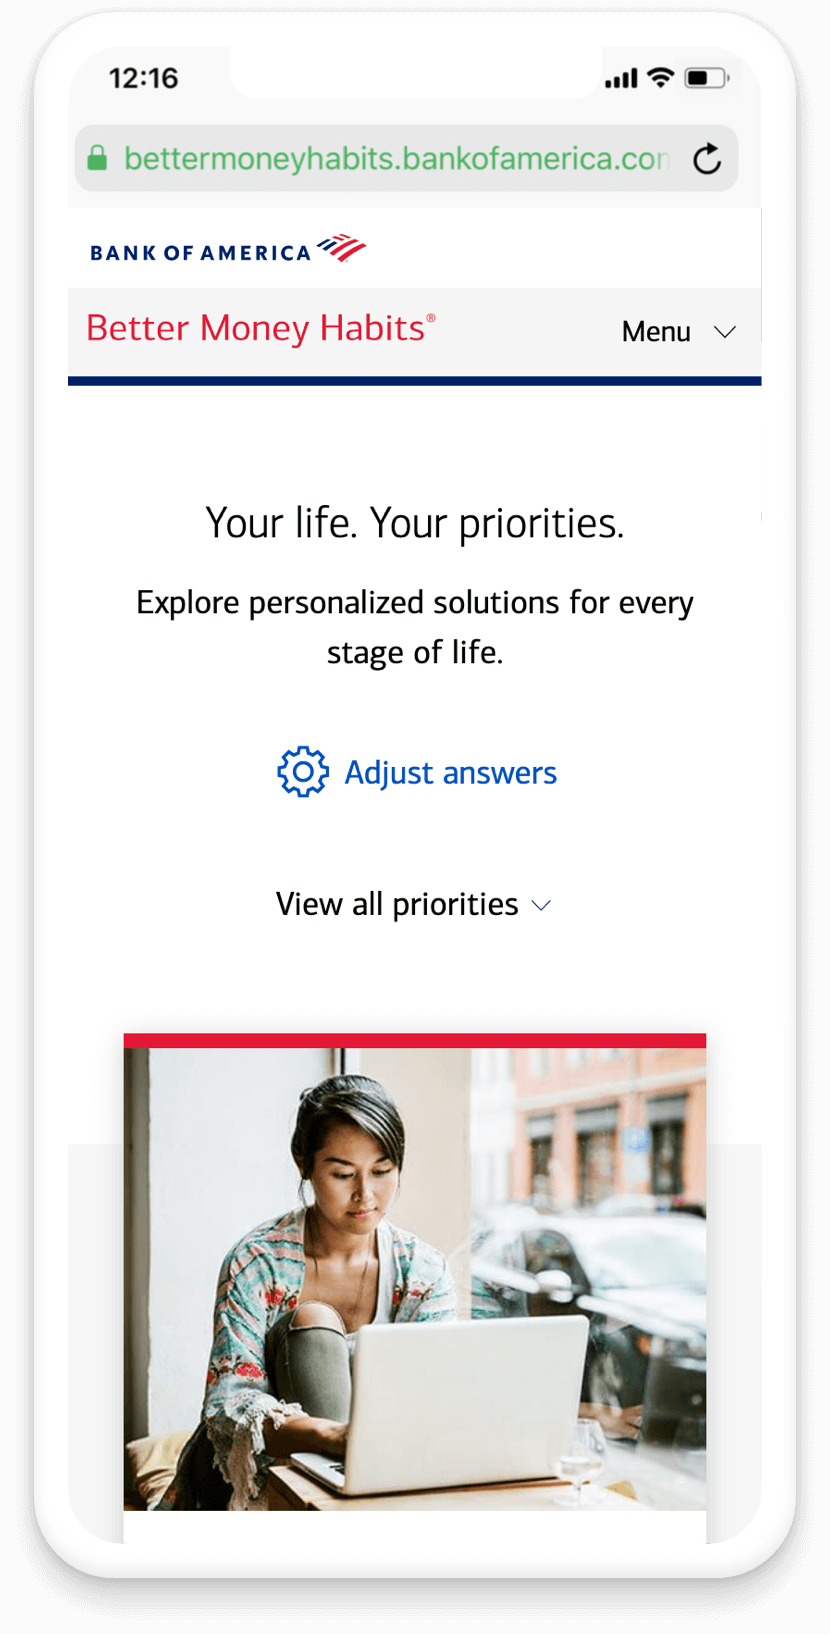 BMH life priorities widget results page